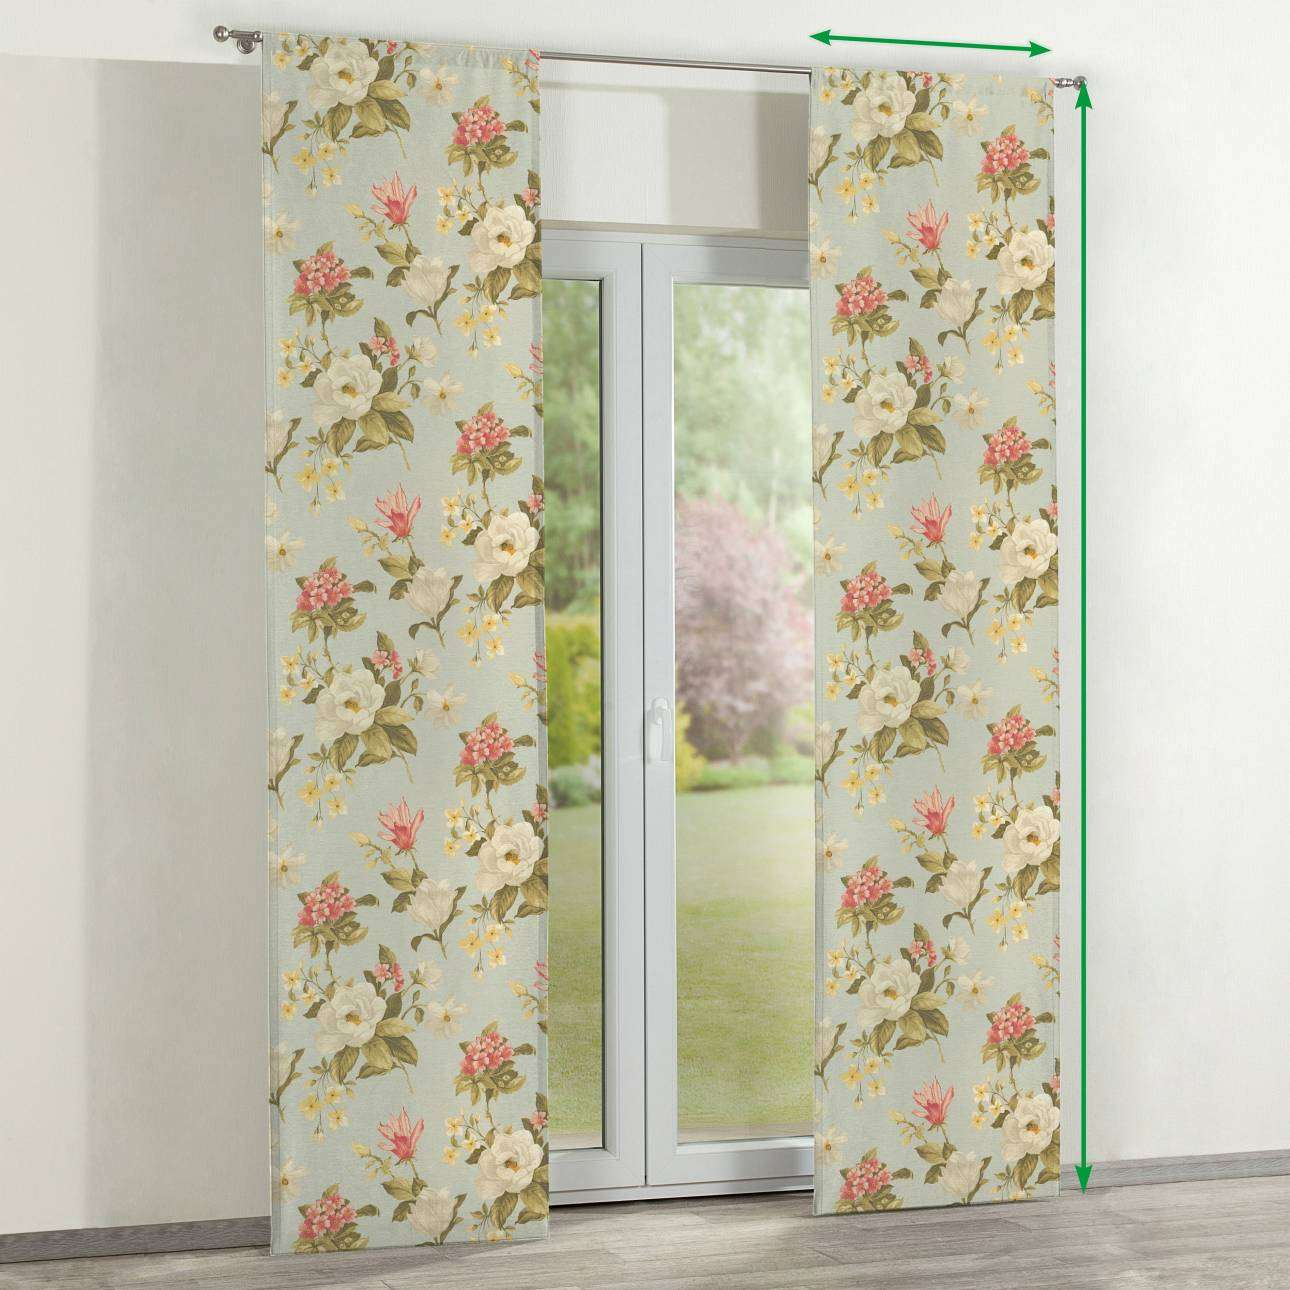 Slot panel curtains – Set of 2 in collection Londres, fabric: 123-65